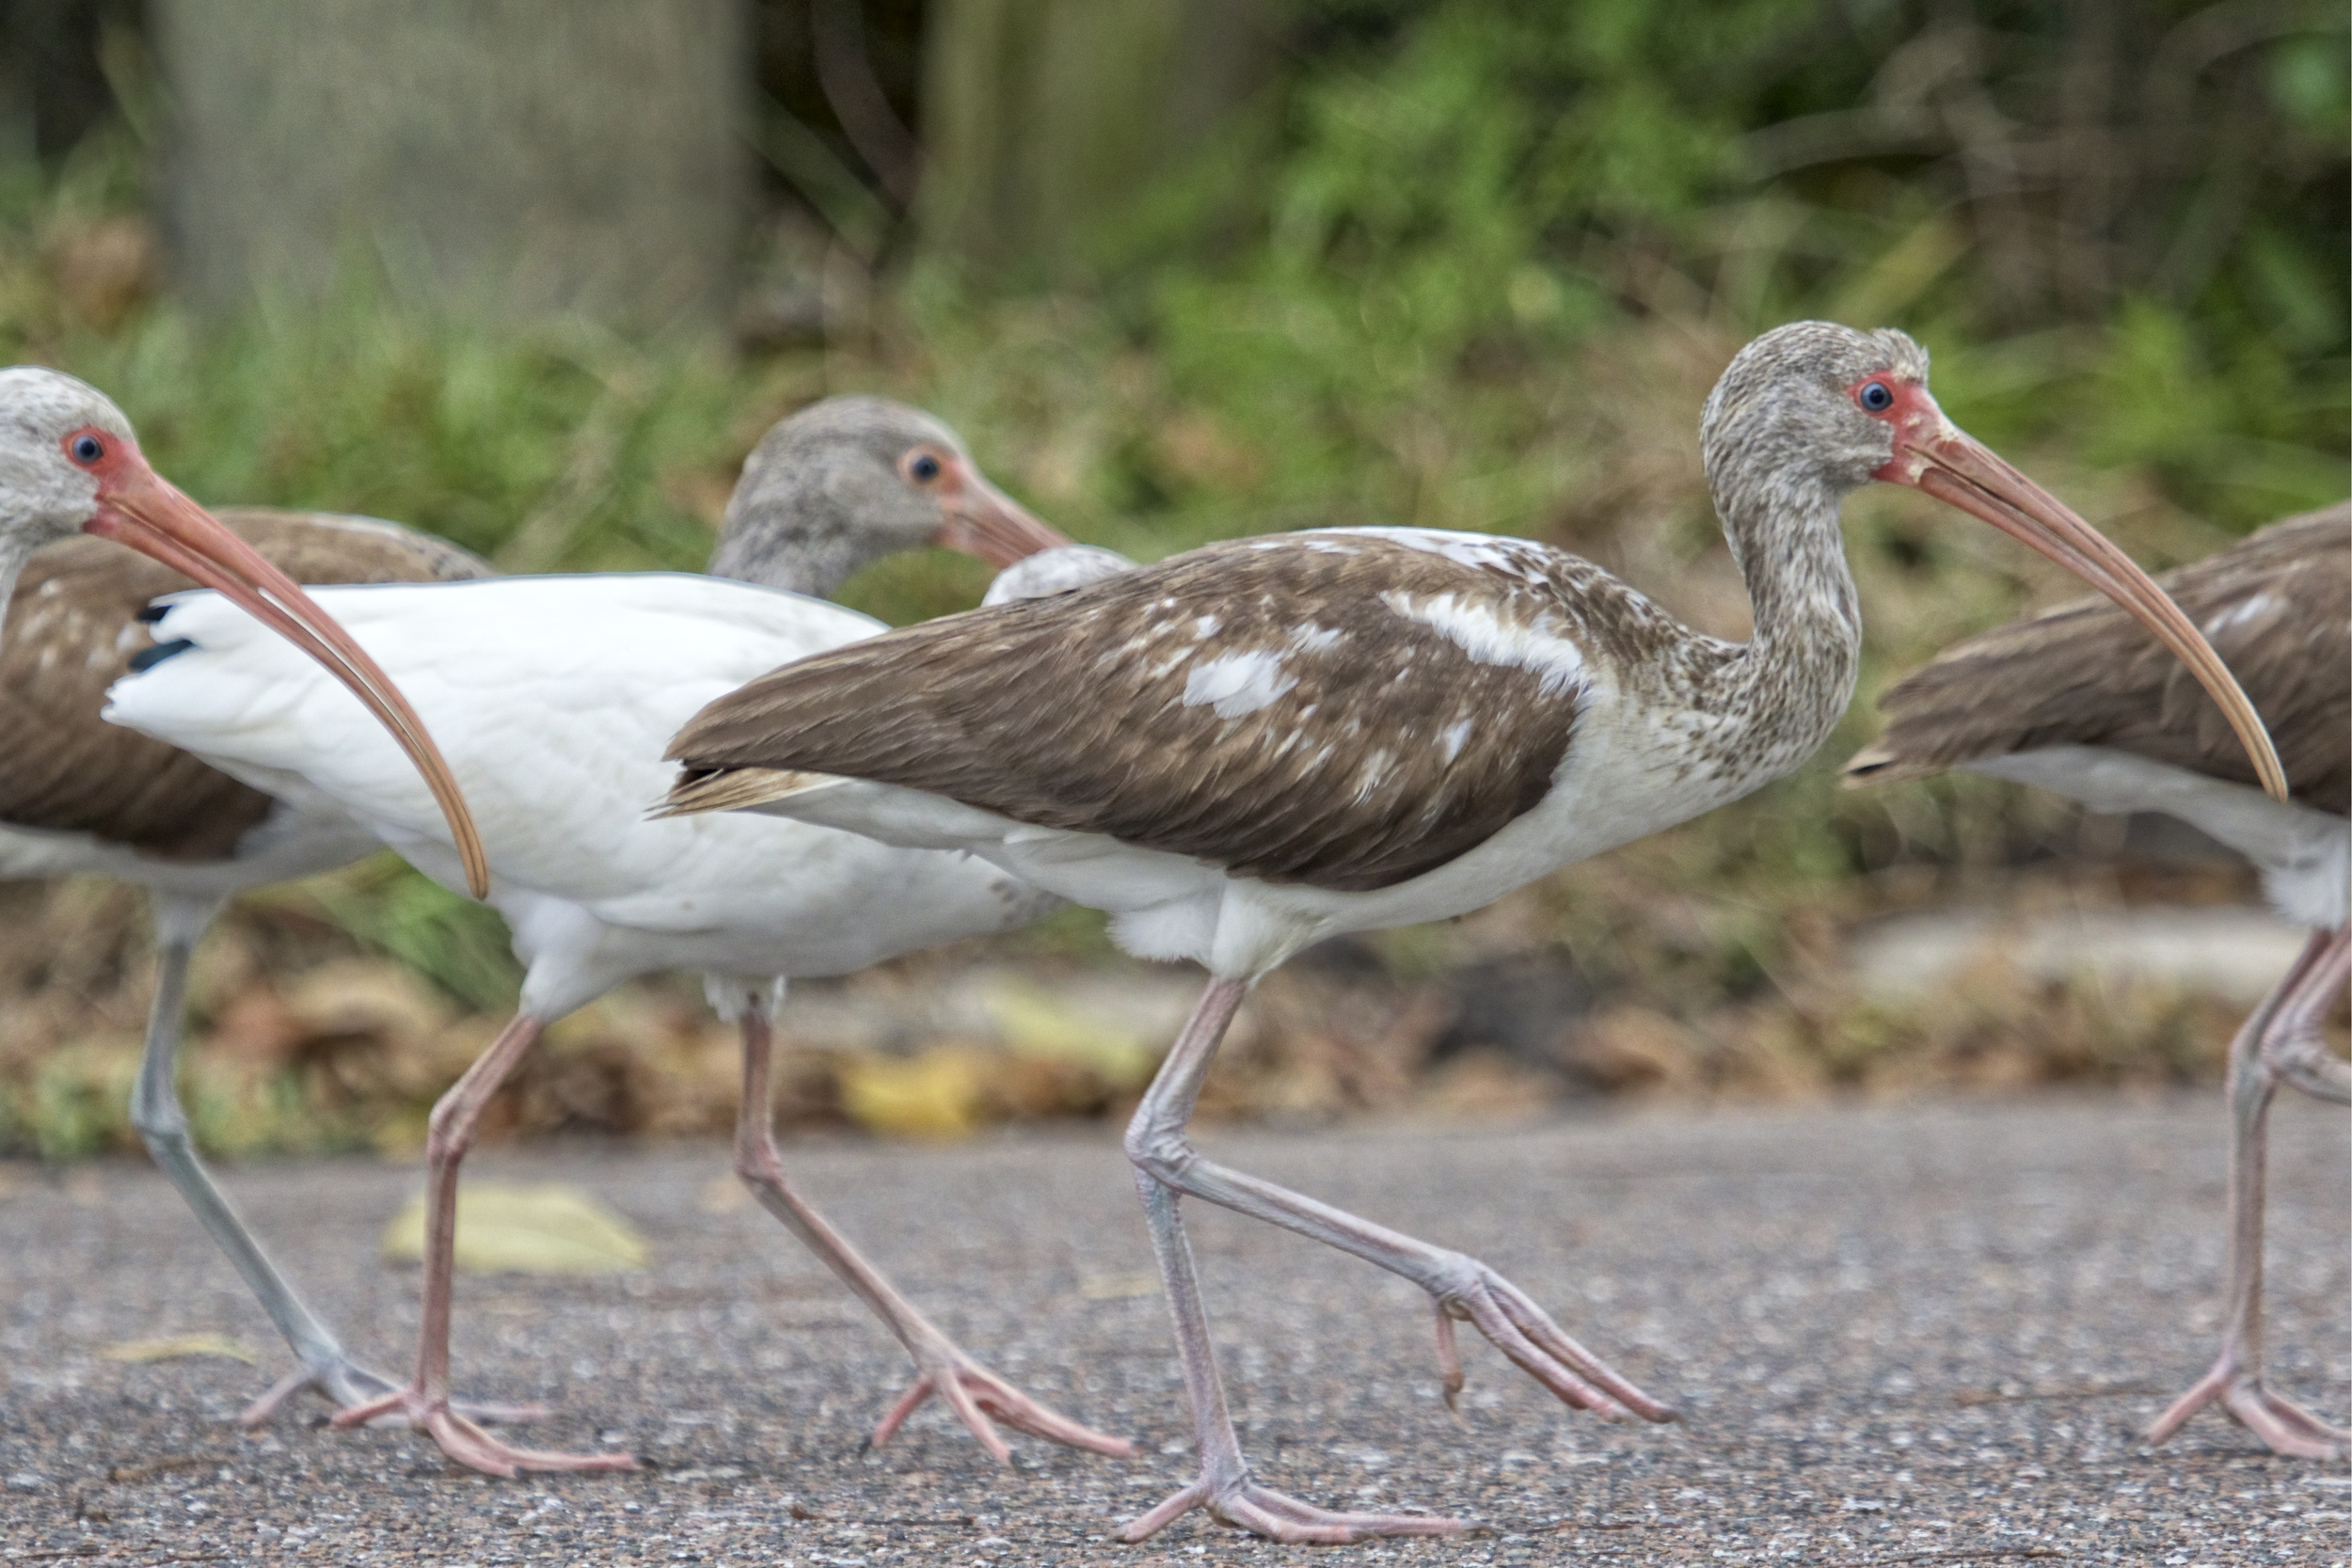 The Immature White Ibis are brown and eventually the feathers turn white..they walk right in front of me as I lay in the driveway.